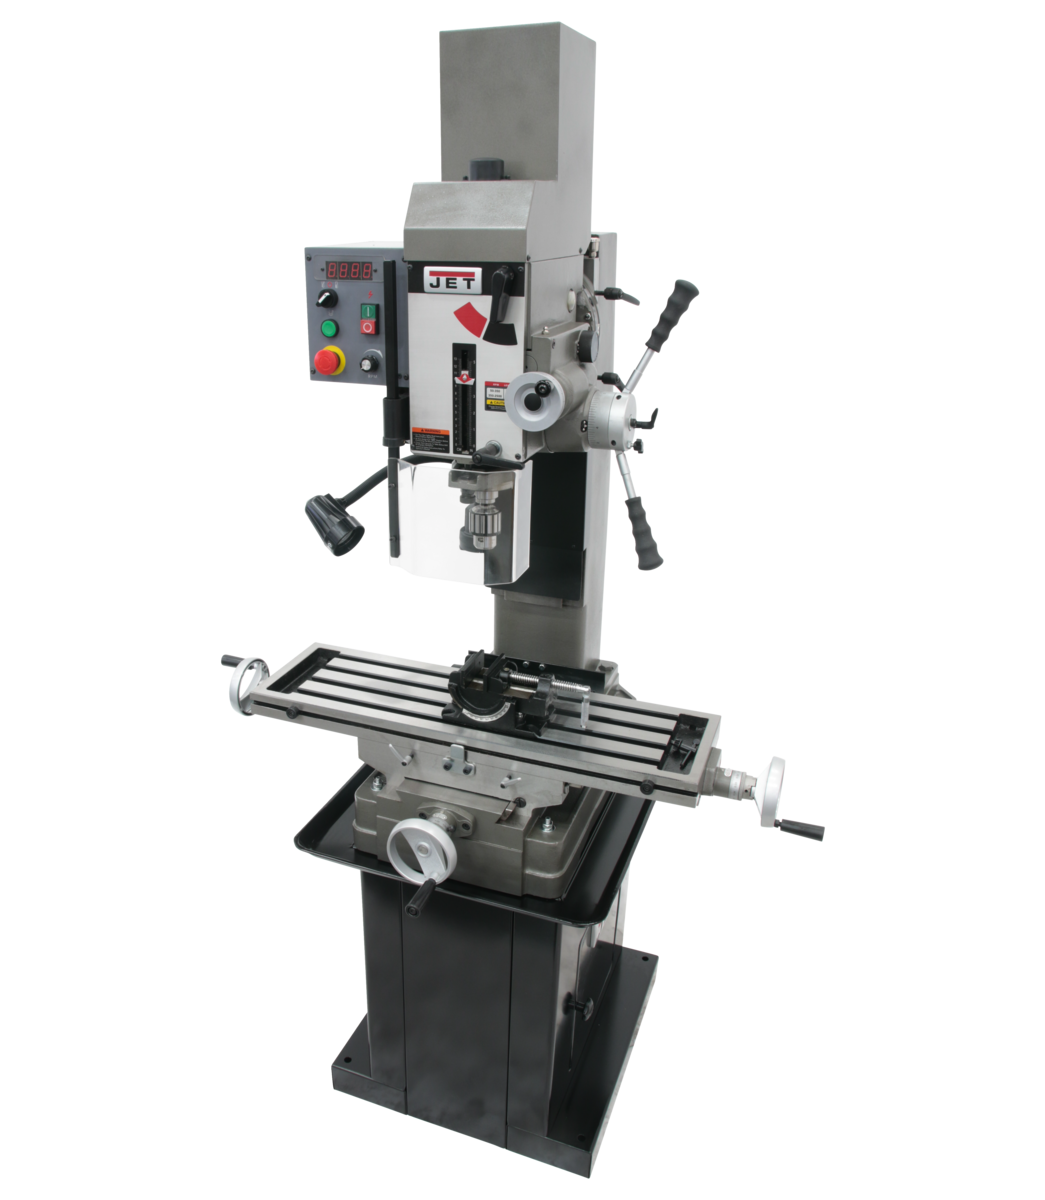 JMD-45VSPFT Variable Speed Geared Head Square Column Mill/Drill with Power Downfeed & Newall DP500 2